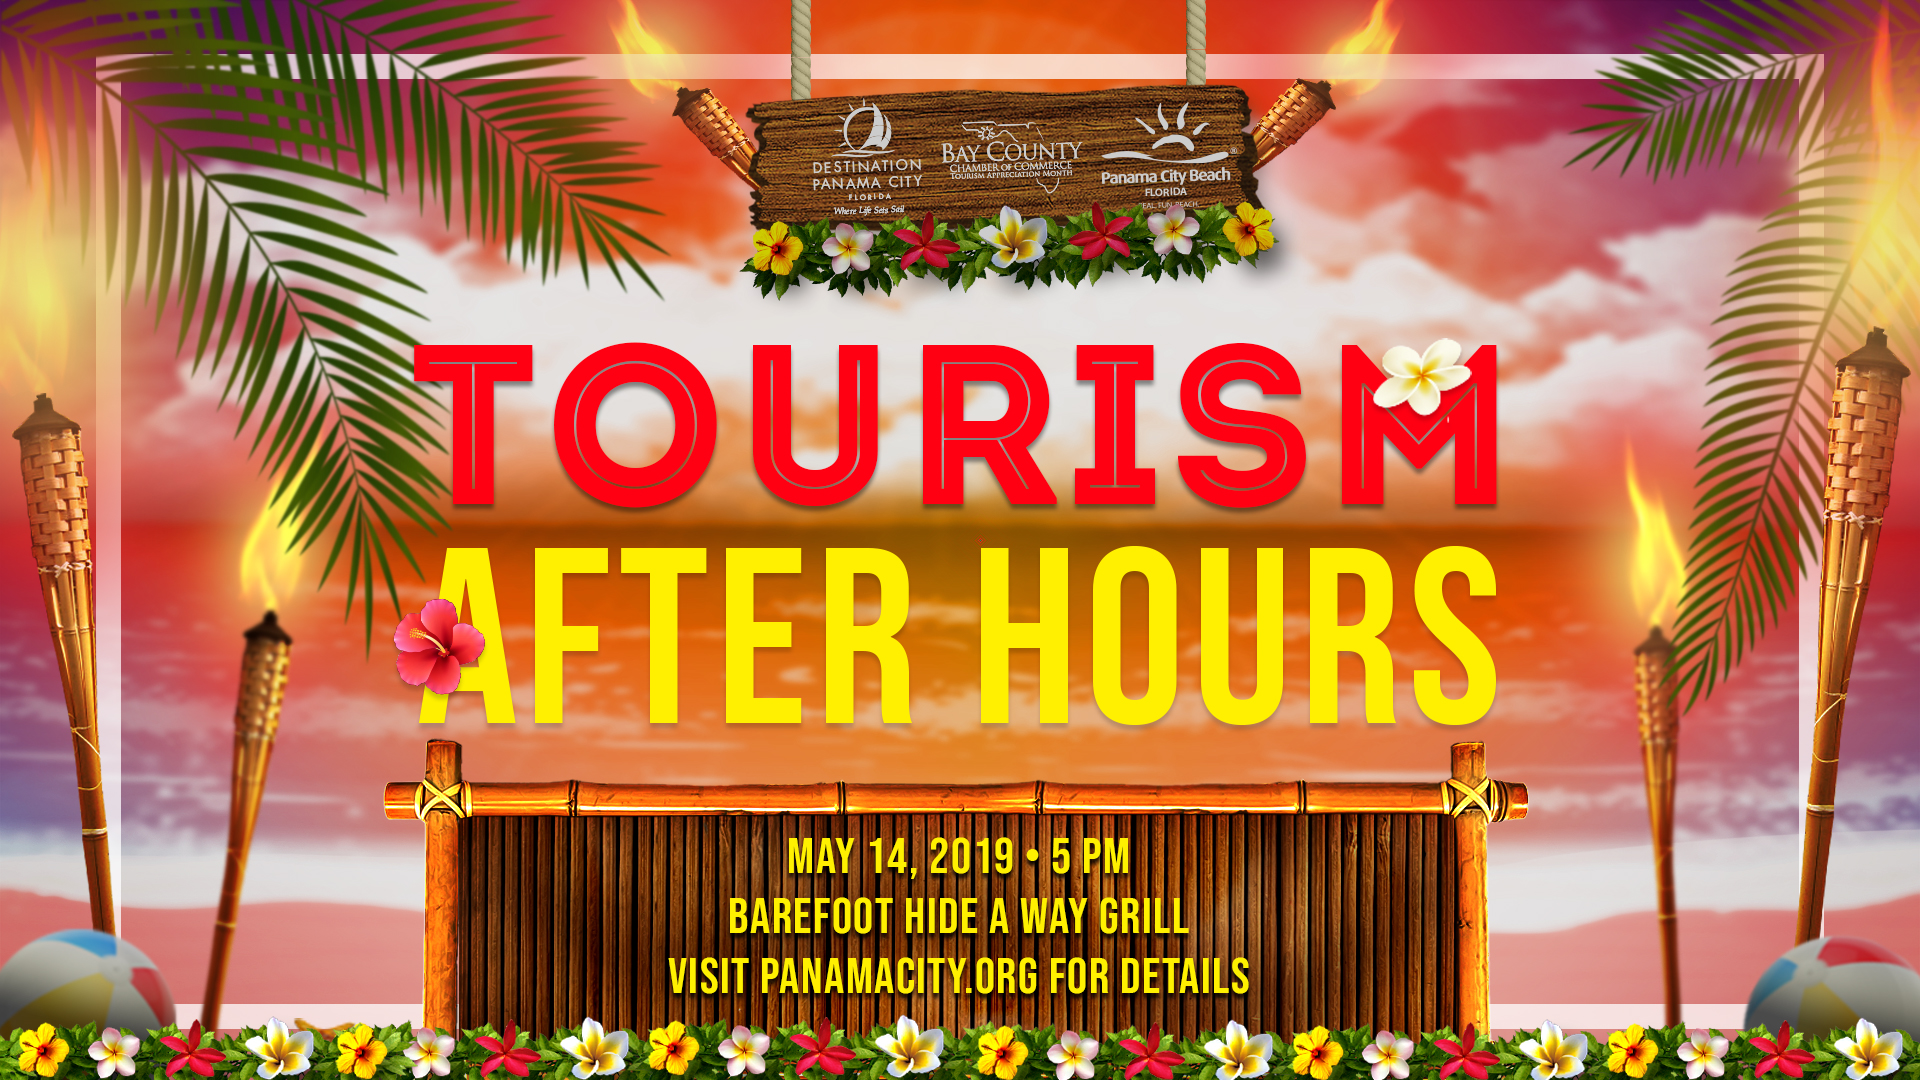 Join us for Tourism After Hours on May 14 at Barefoot Hide-A-Way Bar and Grill.